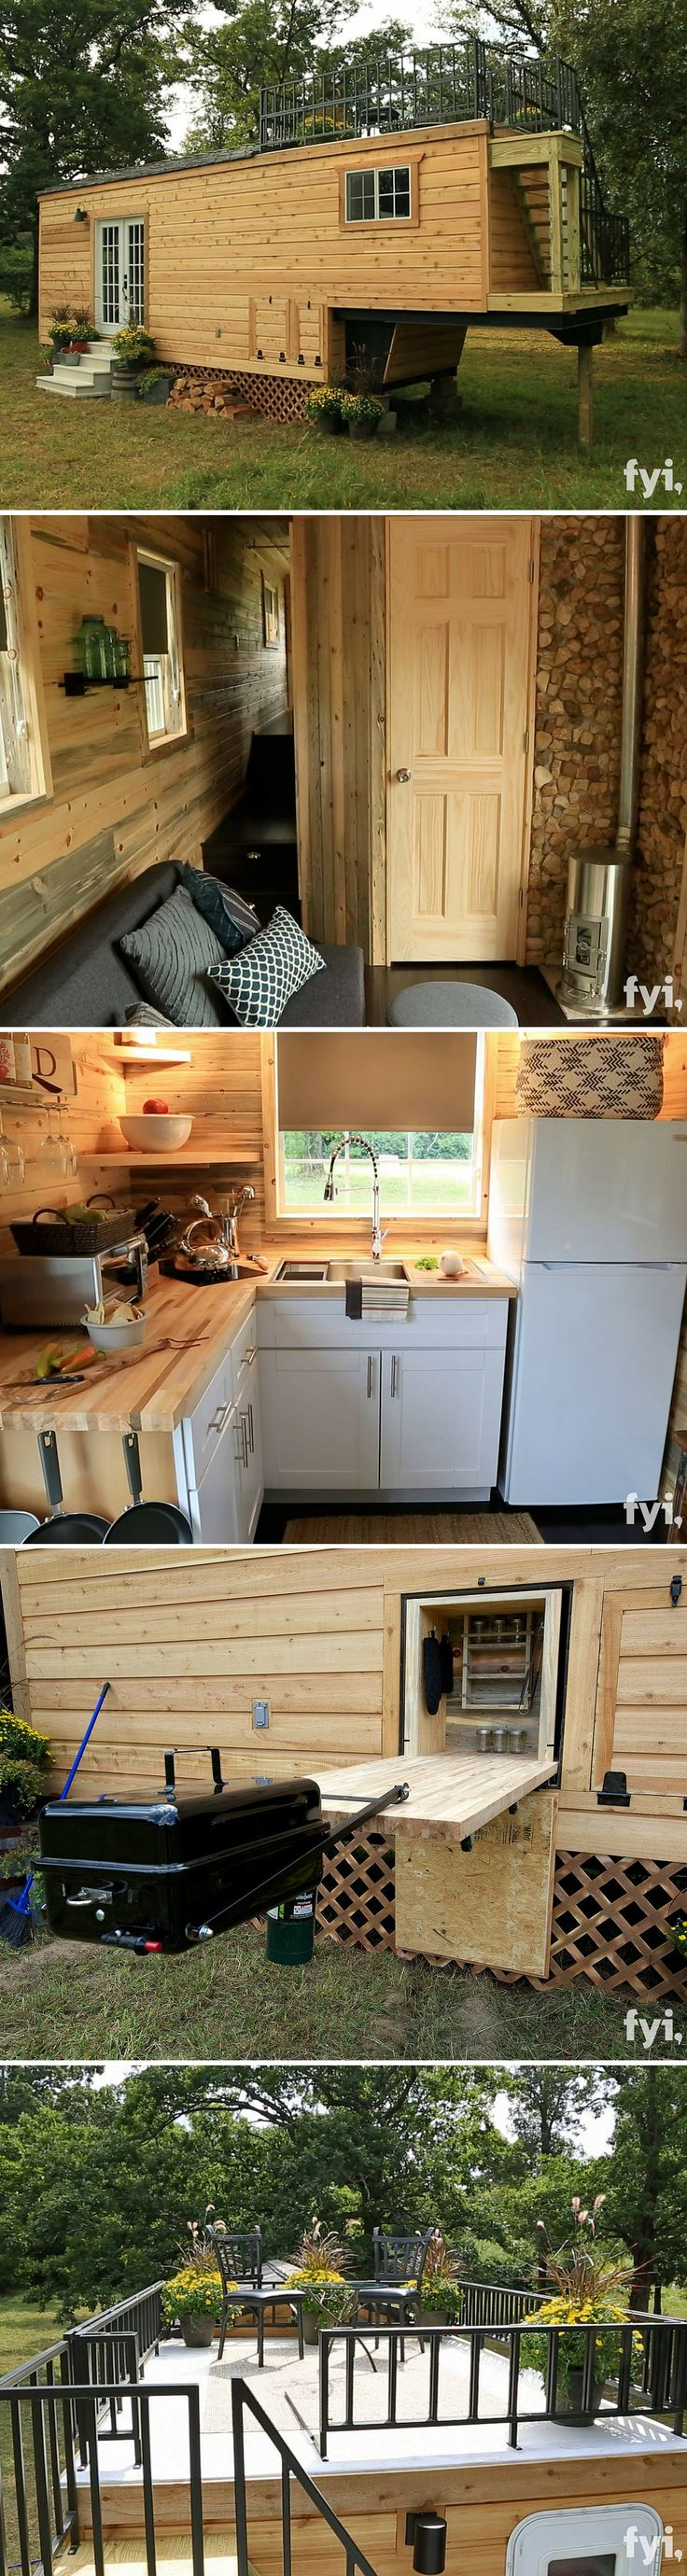 The Honeymoon Suite tiny house. (DON'T KNOW IF THESE FEATURES WOULD BE SUITABLE FOR ALL TYPES OF PEOPLE - HENCE THE NAME . BUT OVERALL I LIKE THE DESIGN . PRACTICAL BUILD FOR THE DIY'ER .DB . 7/27/2016.)